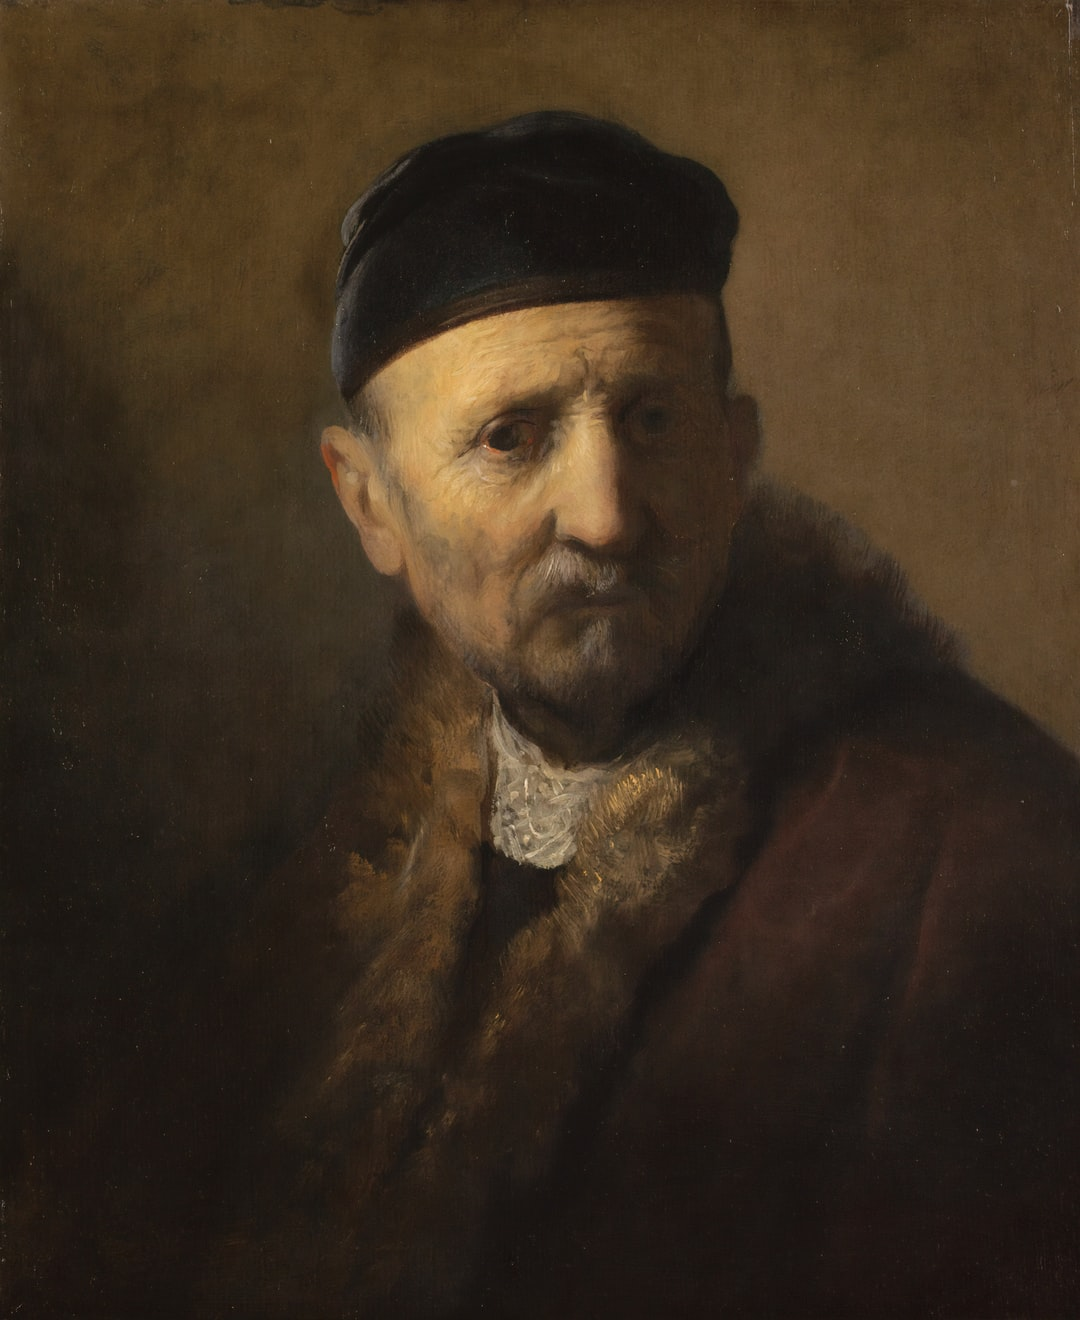 'Tronie' of an Old Man. This painting is a 'tronie', a study of a characterful old man's facial expression. Creator Rembrandt van Rijn. Circa 1630 - 1631. Institution: Mauritshuis Provider: Digital Collection Providing Country: Netherlands PD for Public Domain Mark